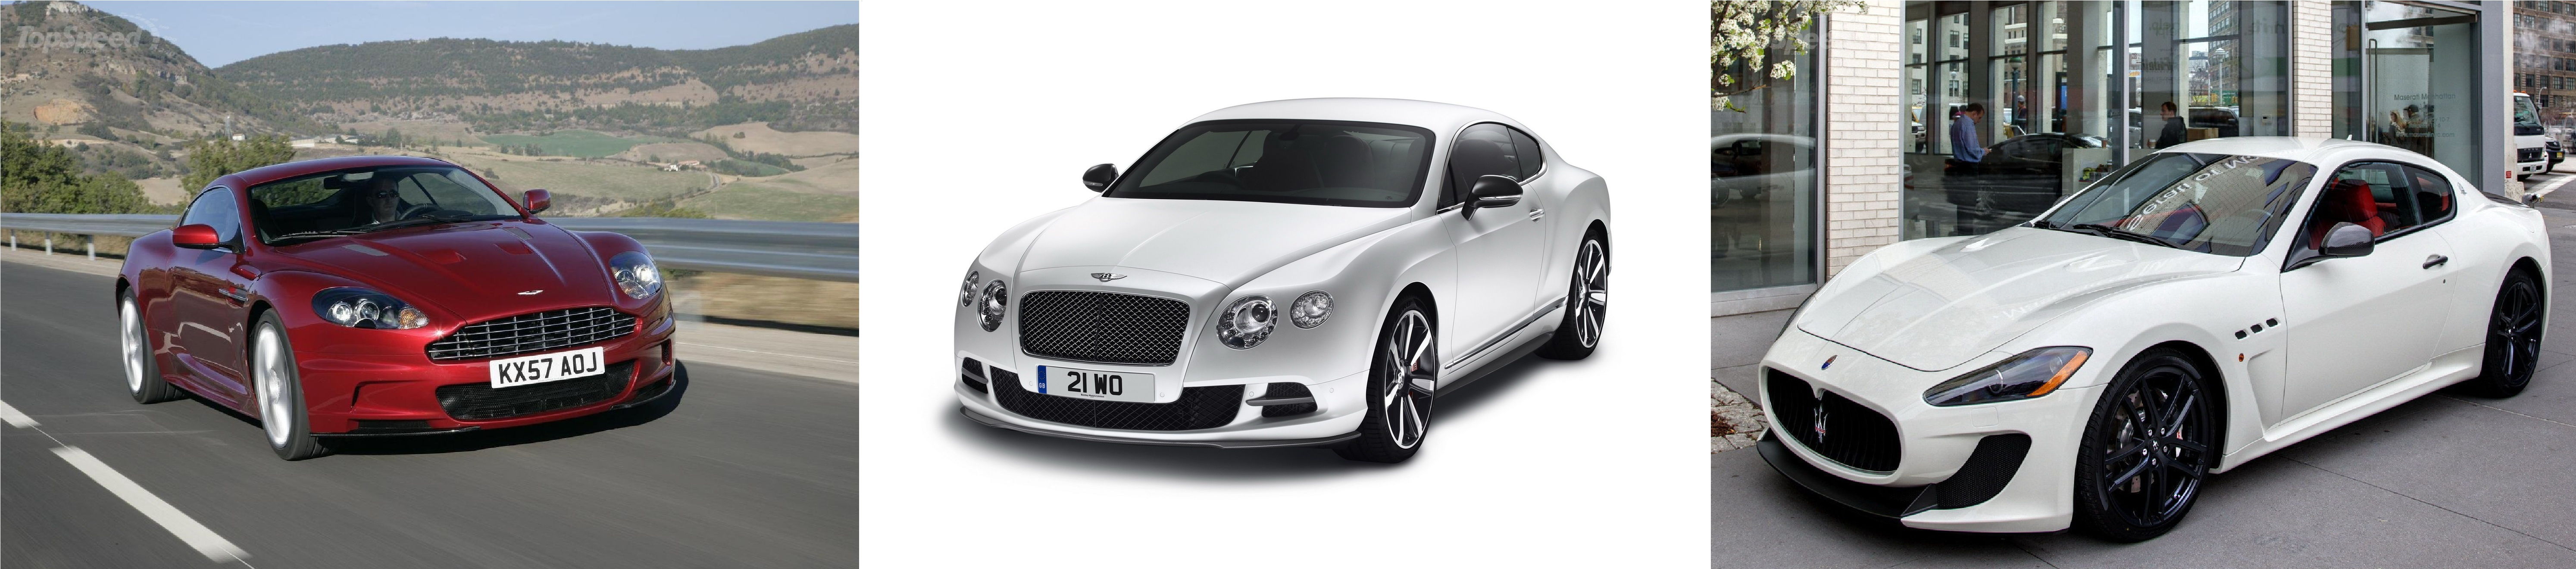 Bentley Continental News And Reviews